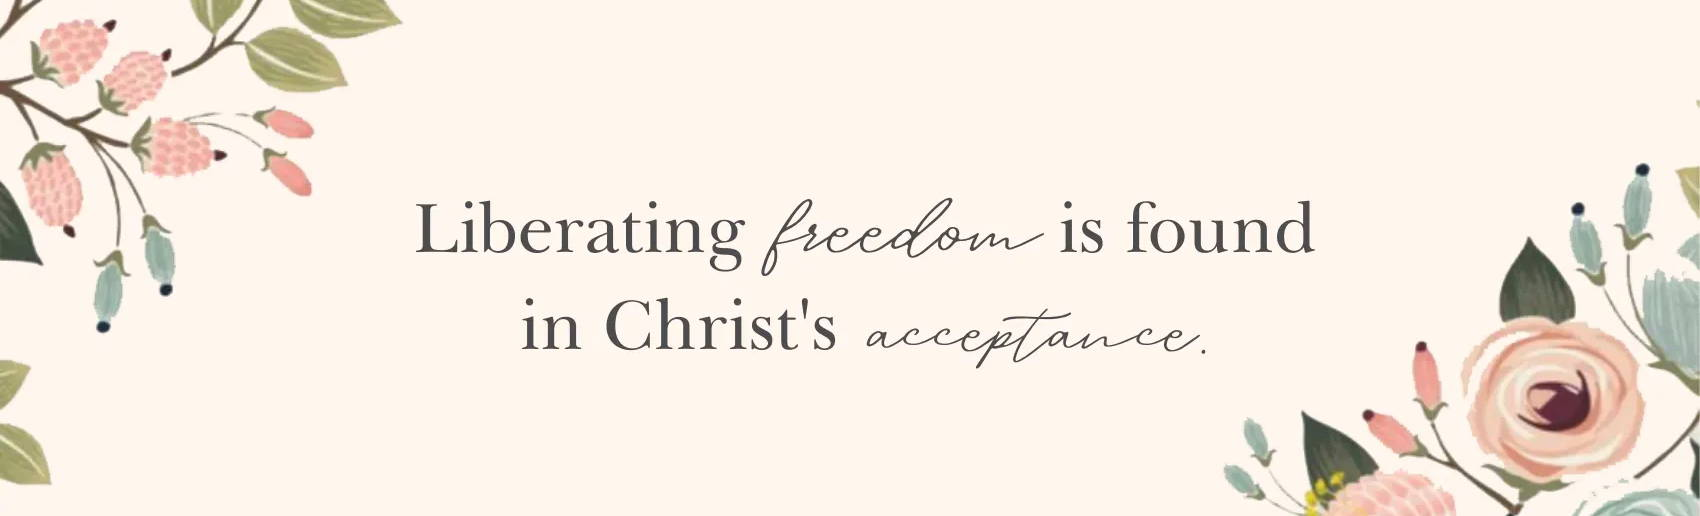 LIberating Freedom is Found in Christ's Acceptance